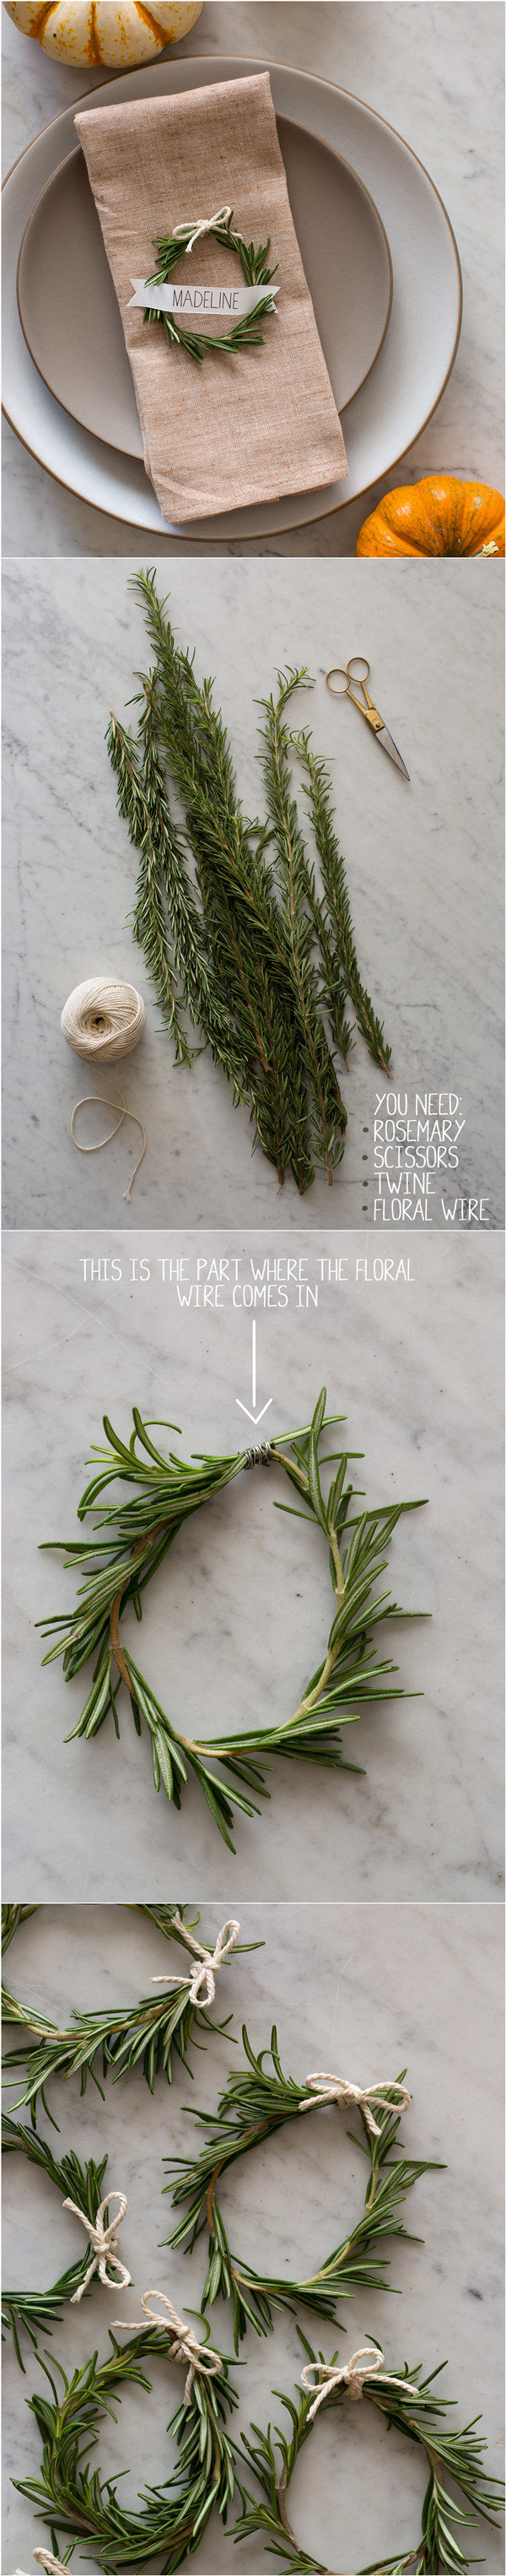 diy Rosemary Wreath Place Cards for wedding reception ideas